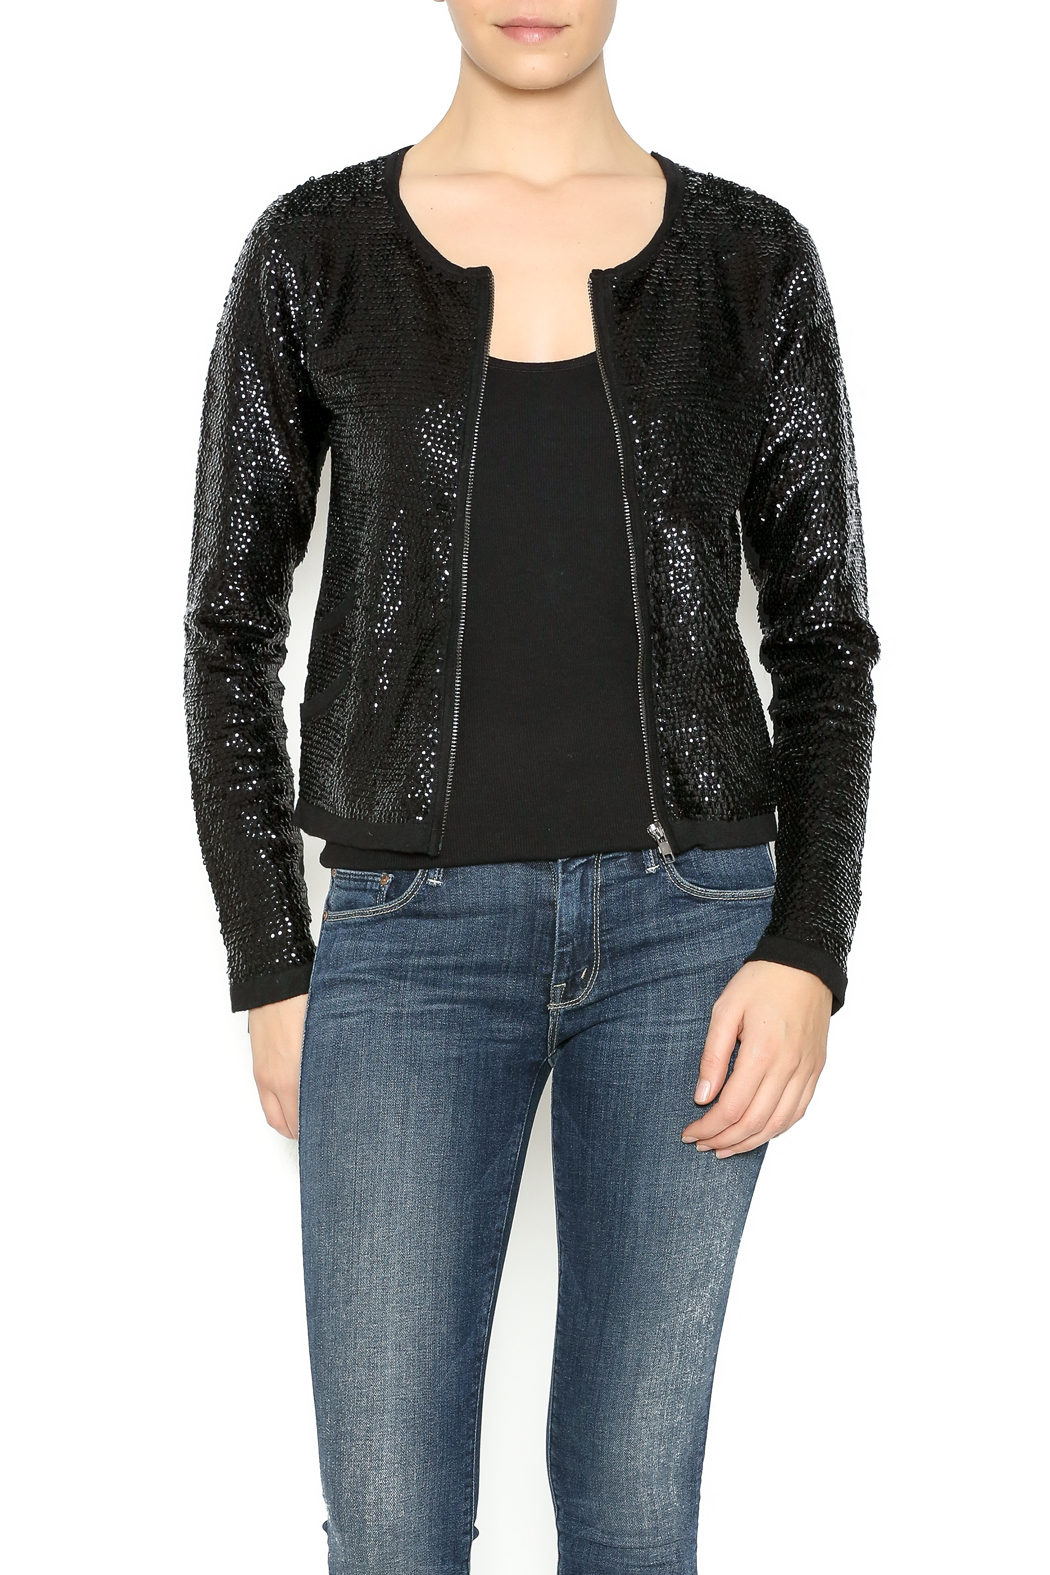 Olivaceous Sequin Cardigan Jacket from Michigan by Sparrow ...